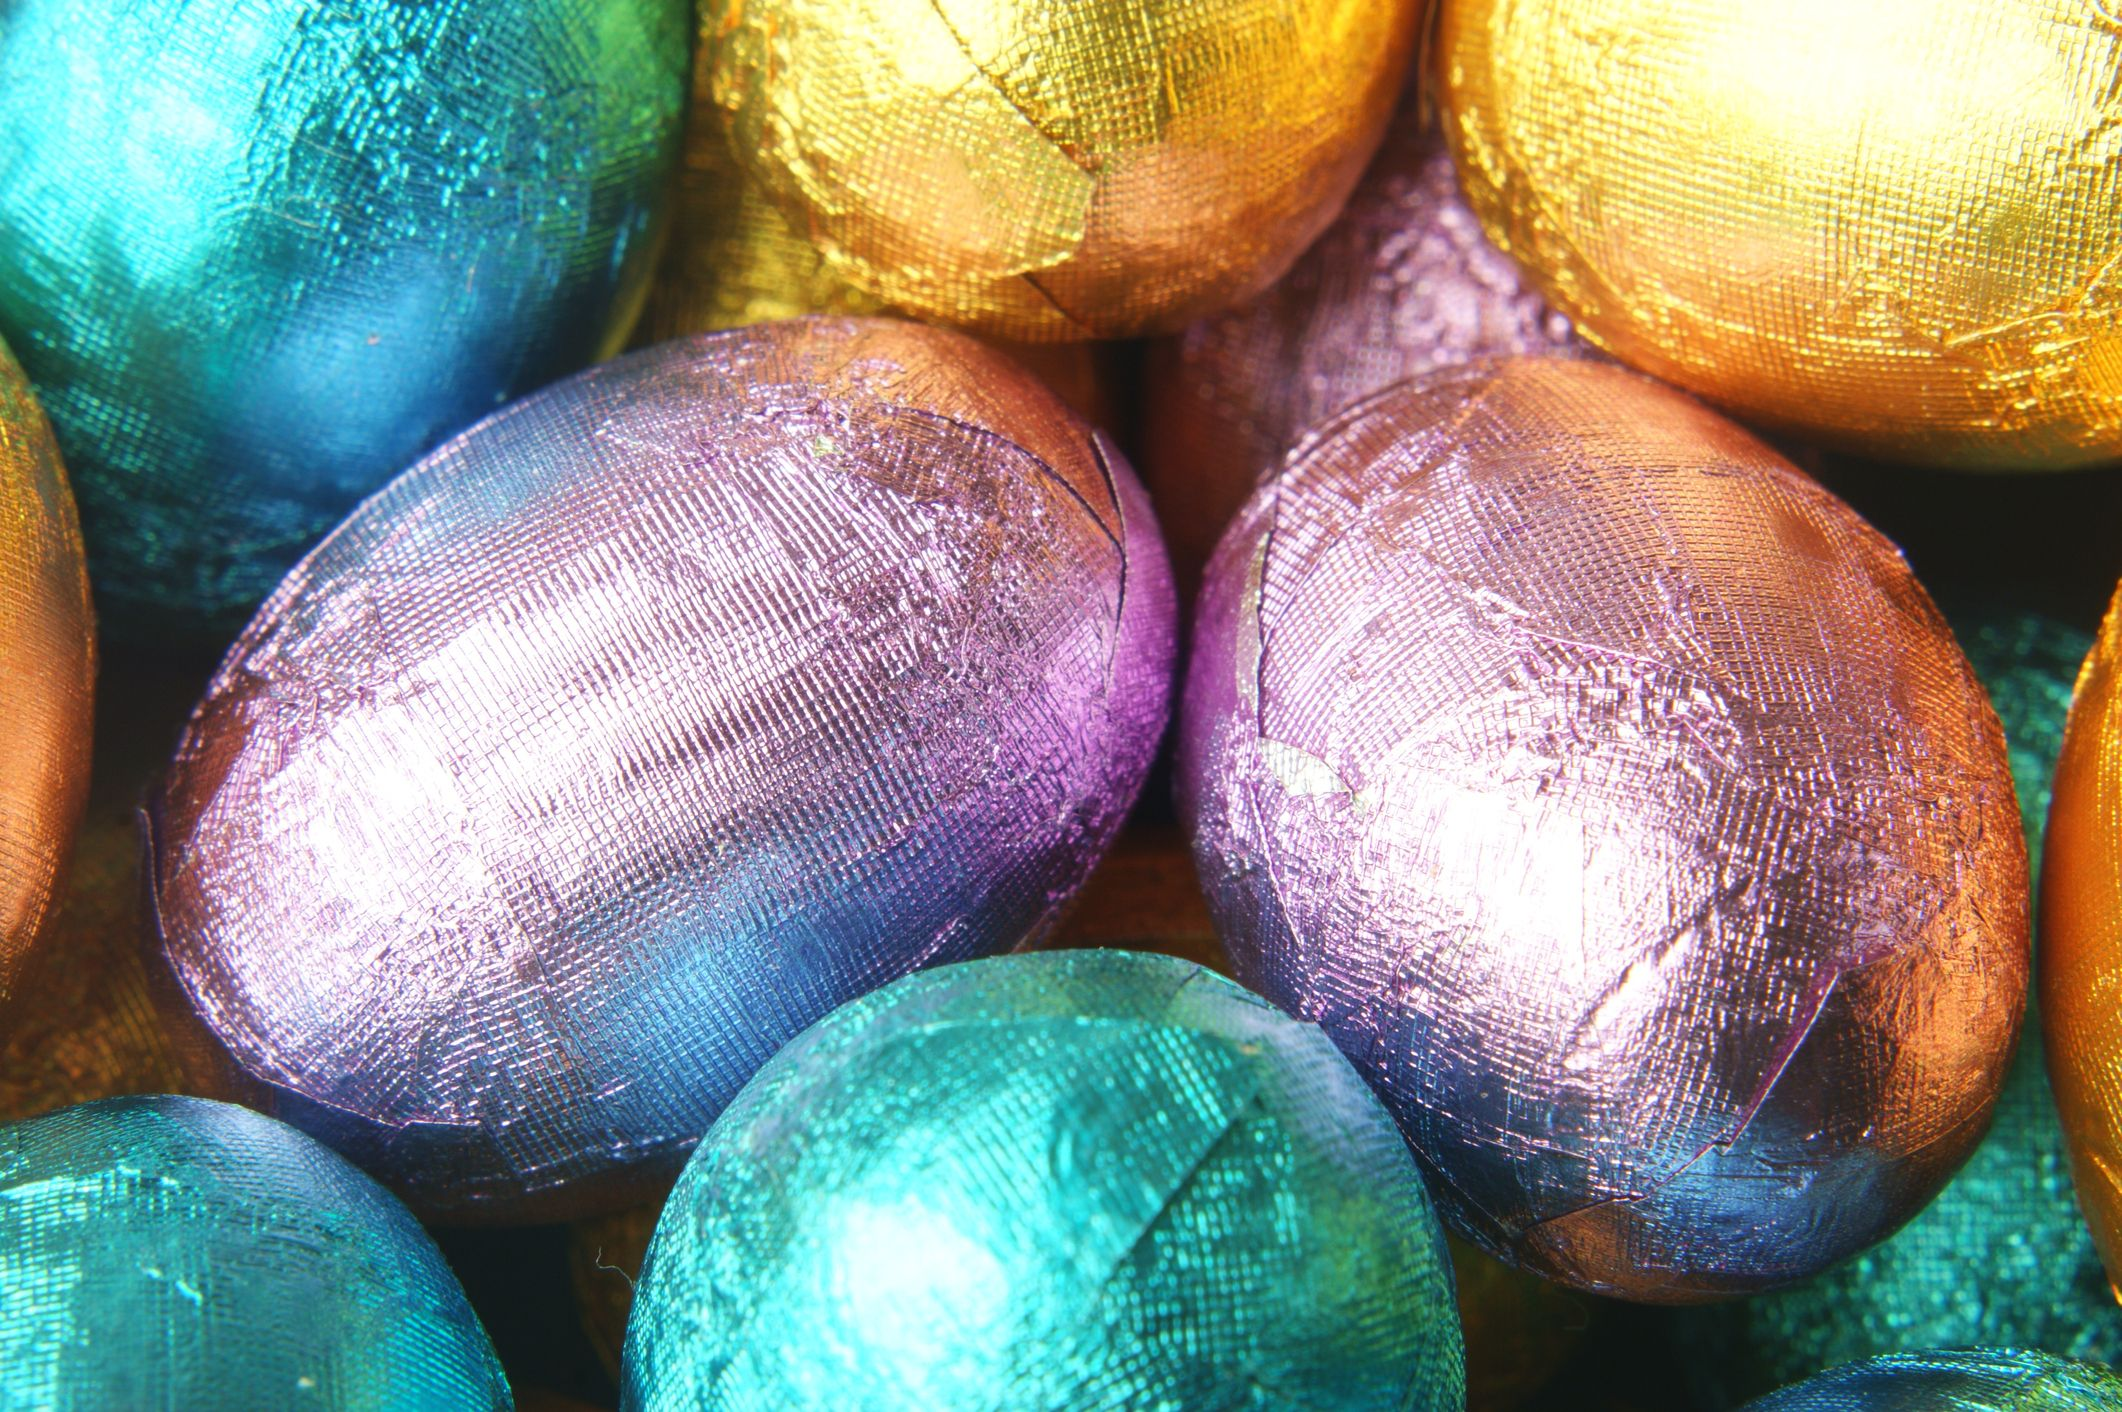 Lindts White Chocolate Easter Egg Rated The Best Of 2019